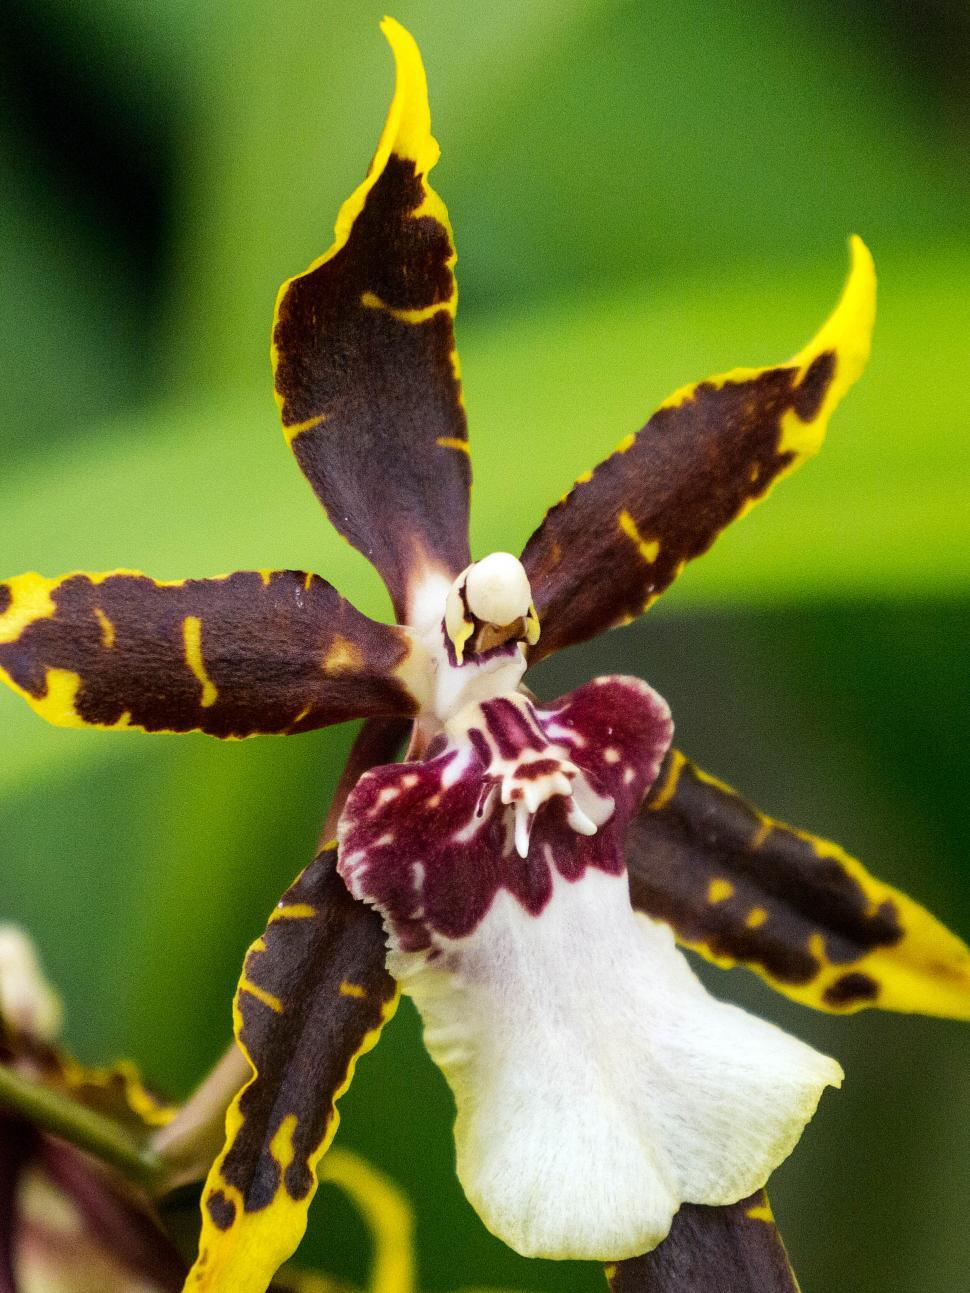 Download Free Stock HD Photo of Yellow and Brown Spider Orchid Flower Macro Online